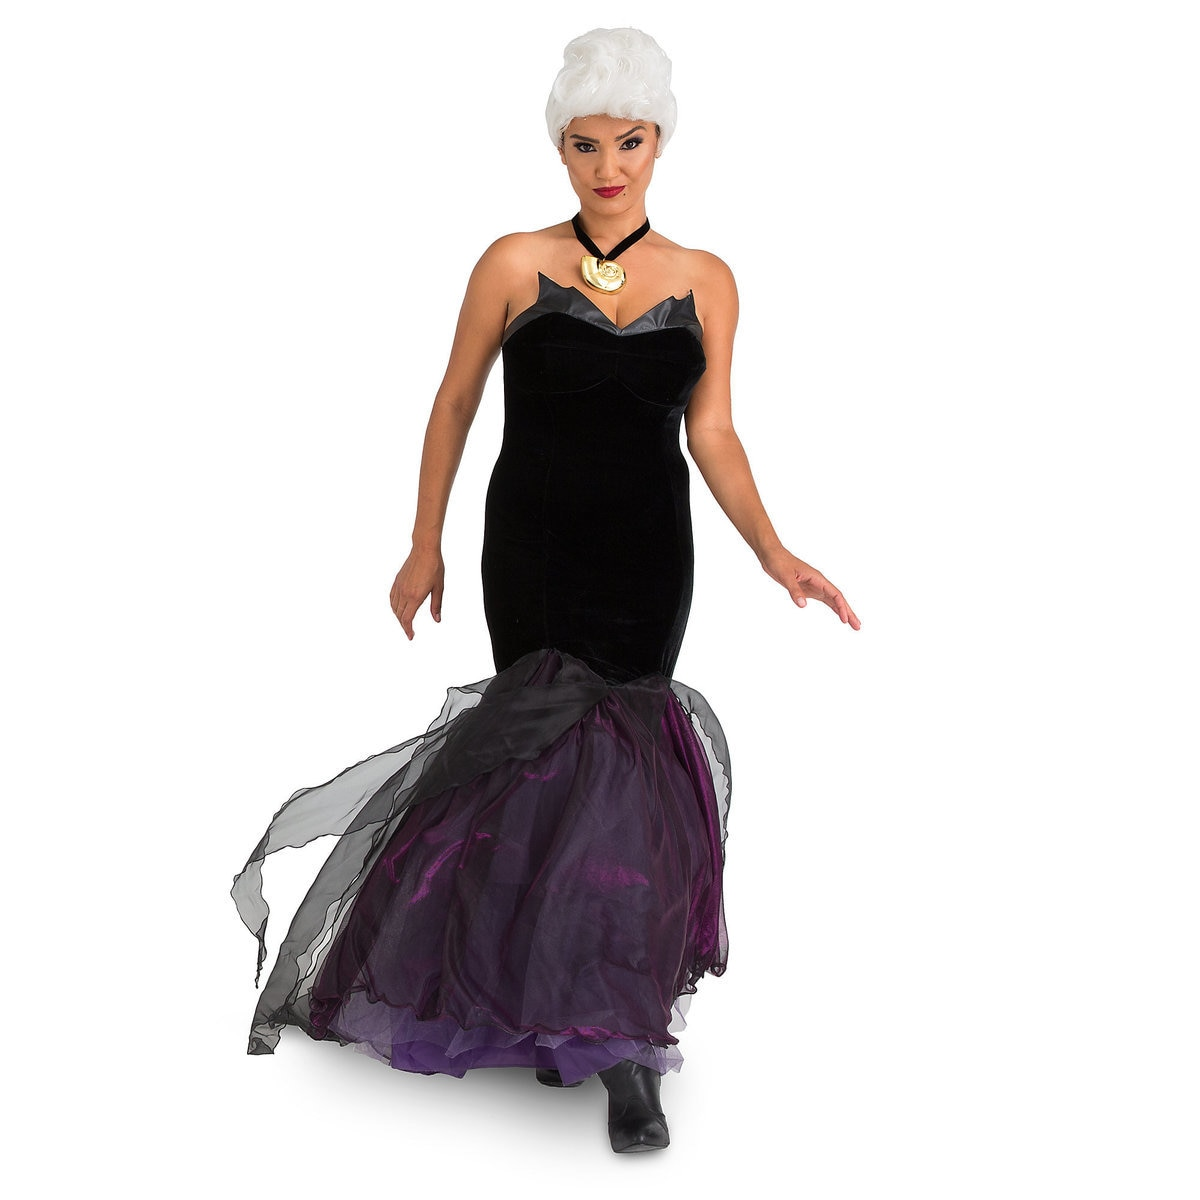 a20678d73 Product Image of Ursula Costume for Adults by Disguise # 1